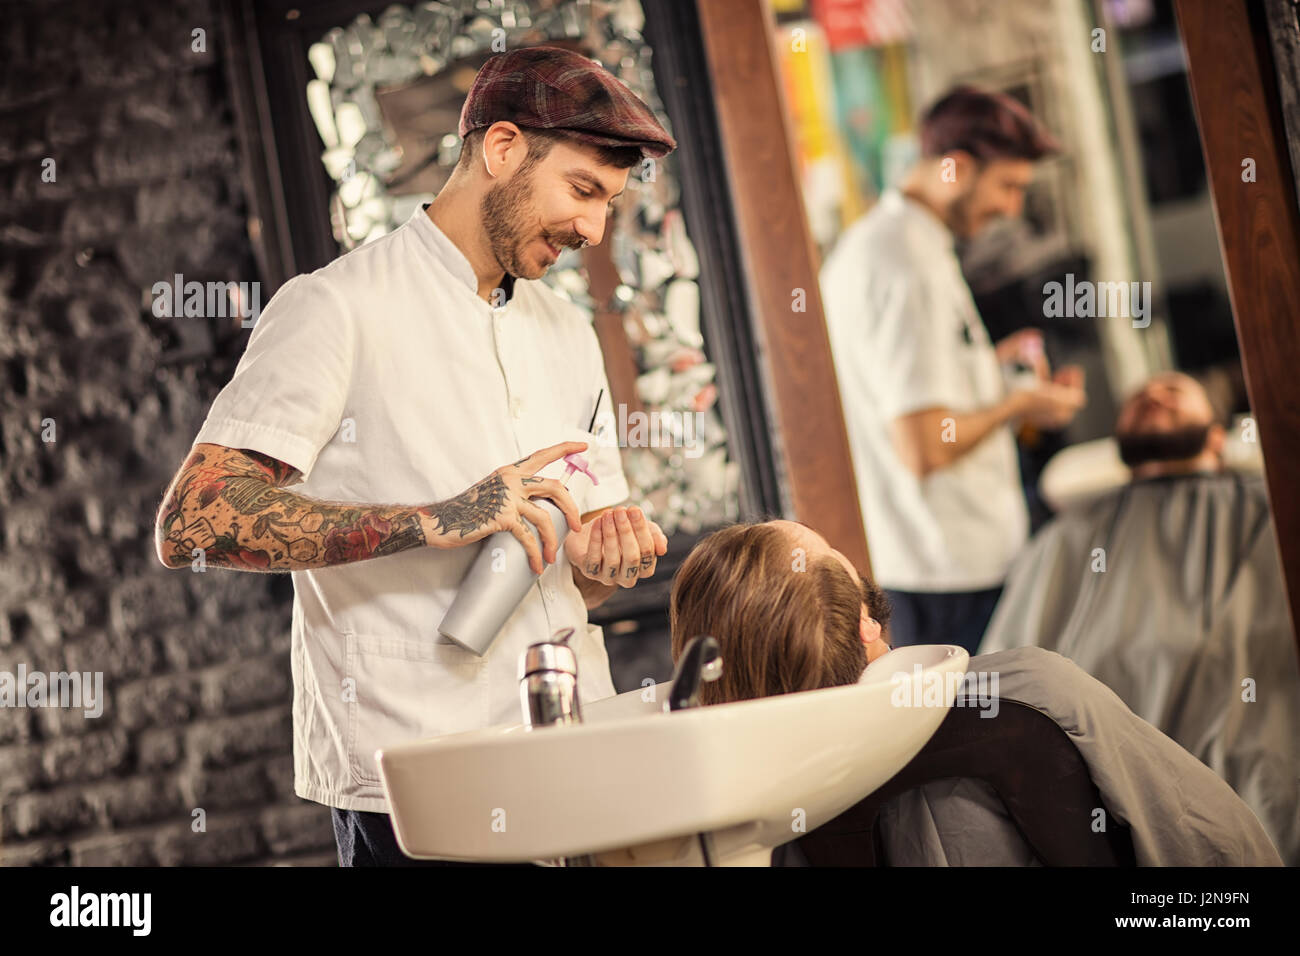 Hairstylist washing head of man with beard in barbershop - Stock Image